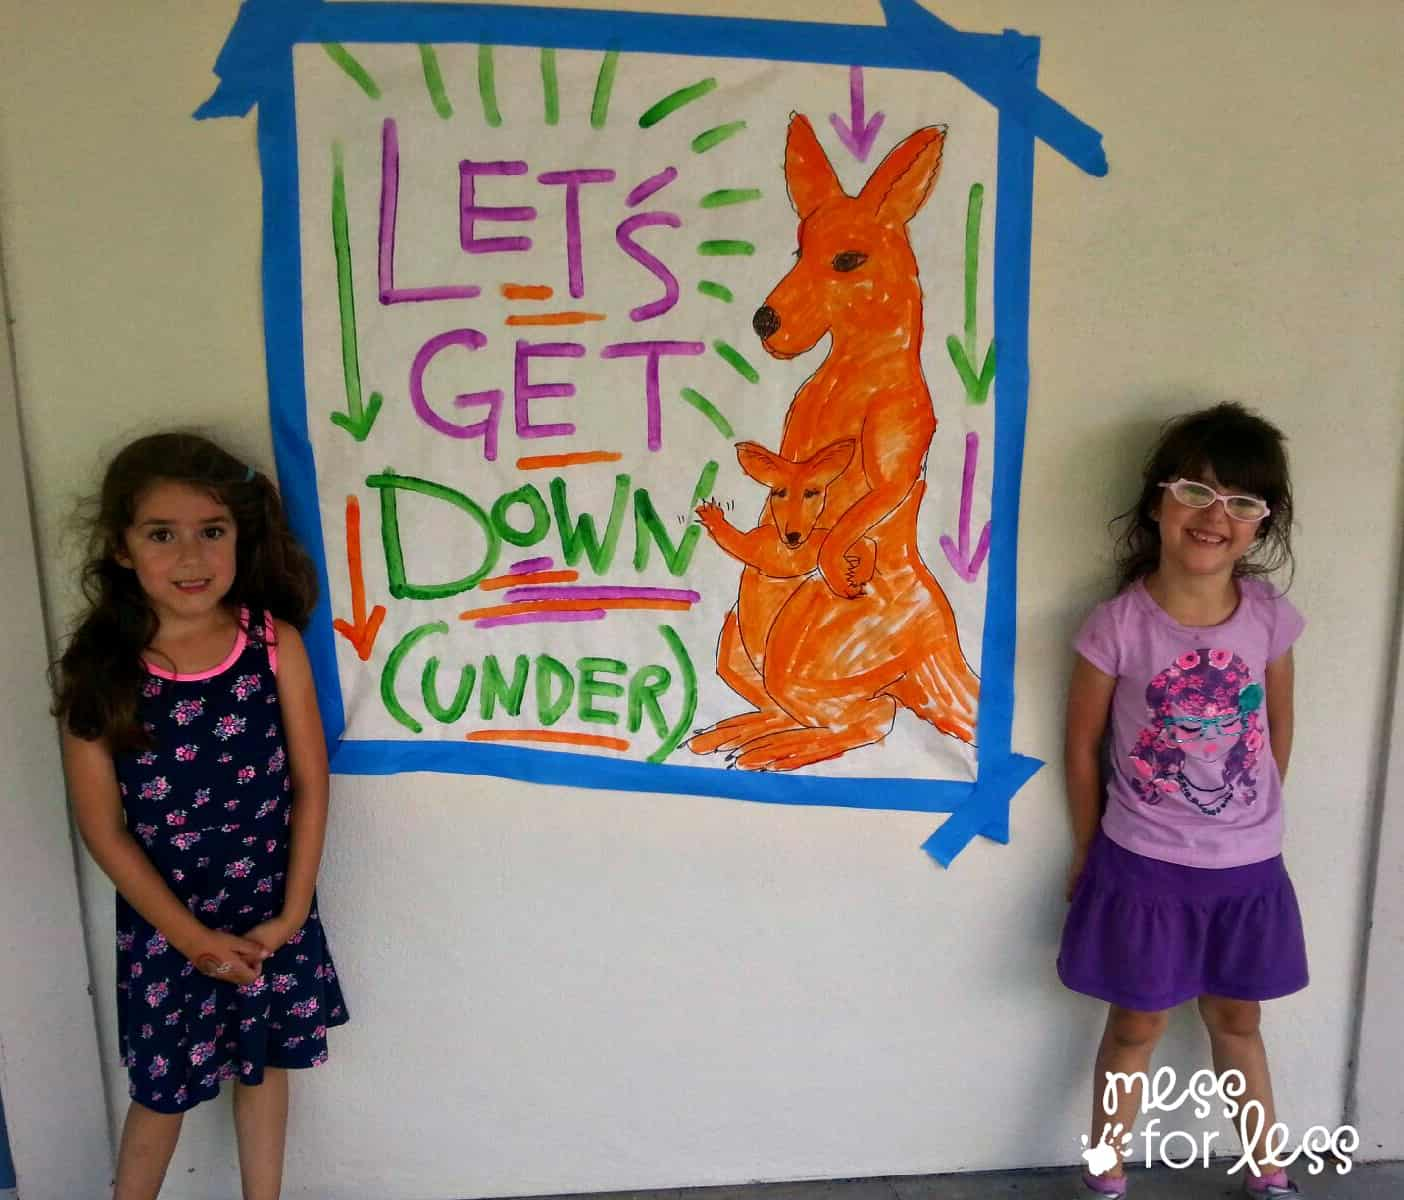 fun down under at Galileo camps #sponsored